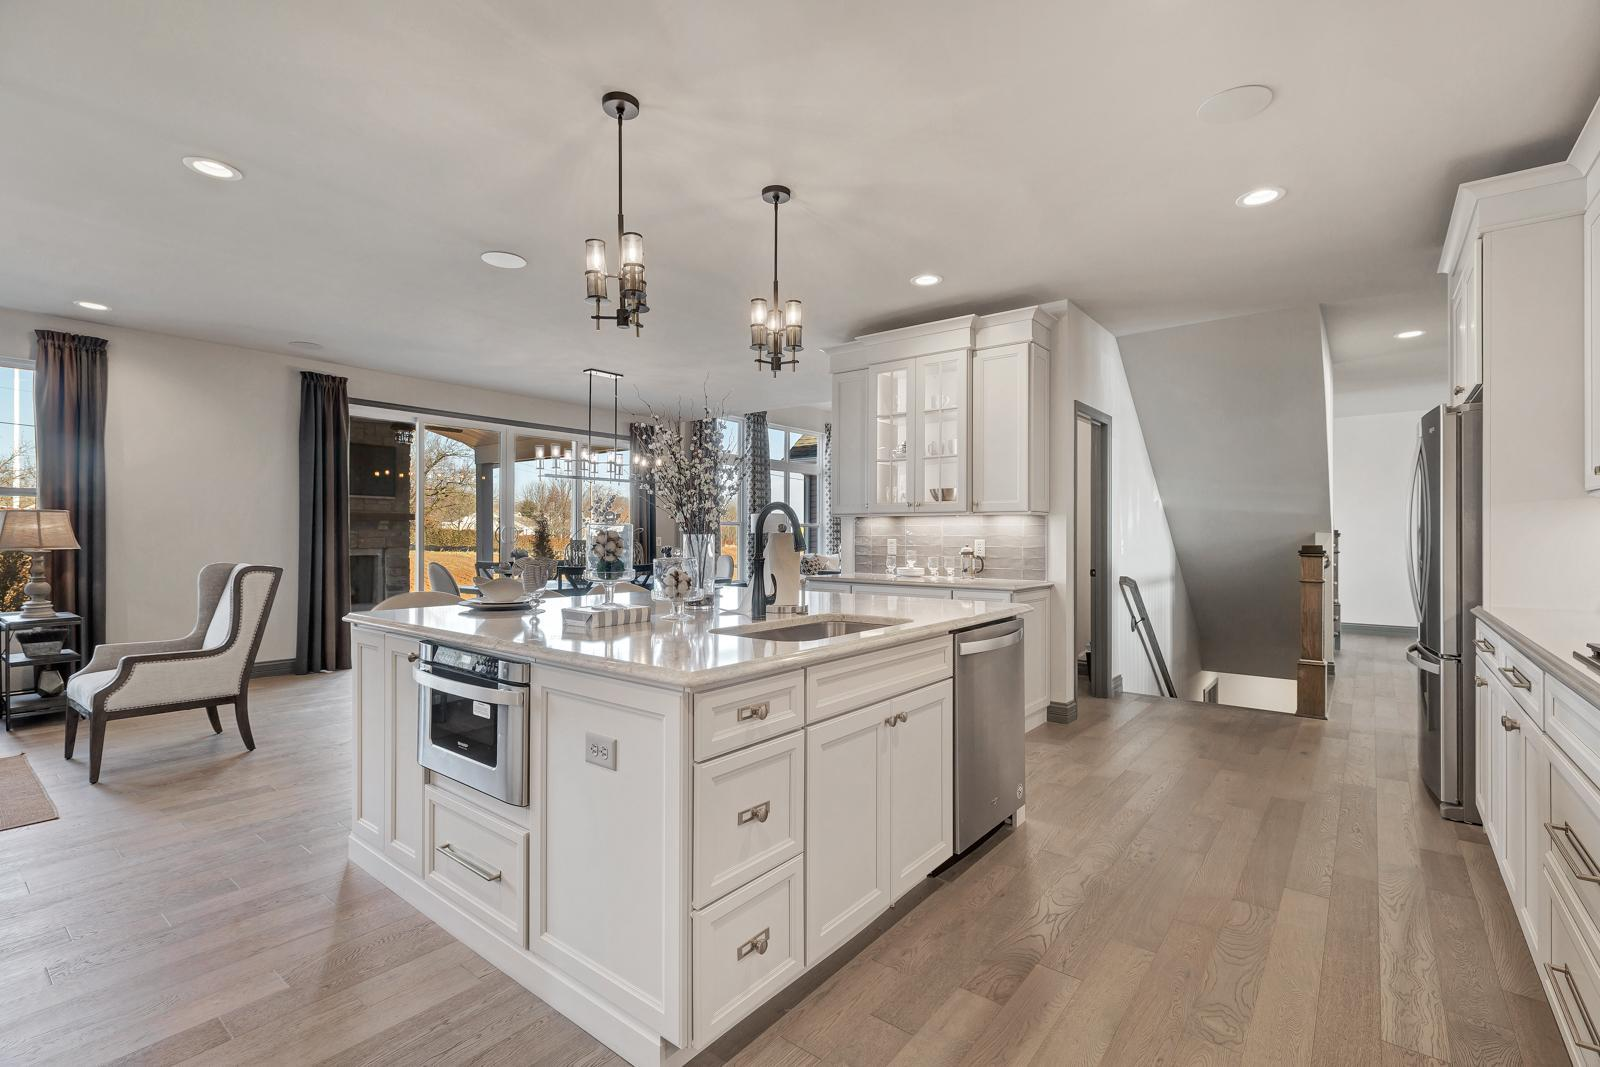 Kitchen featured in the Turnberry By McKelvey Homes in St. Louis, MO